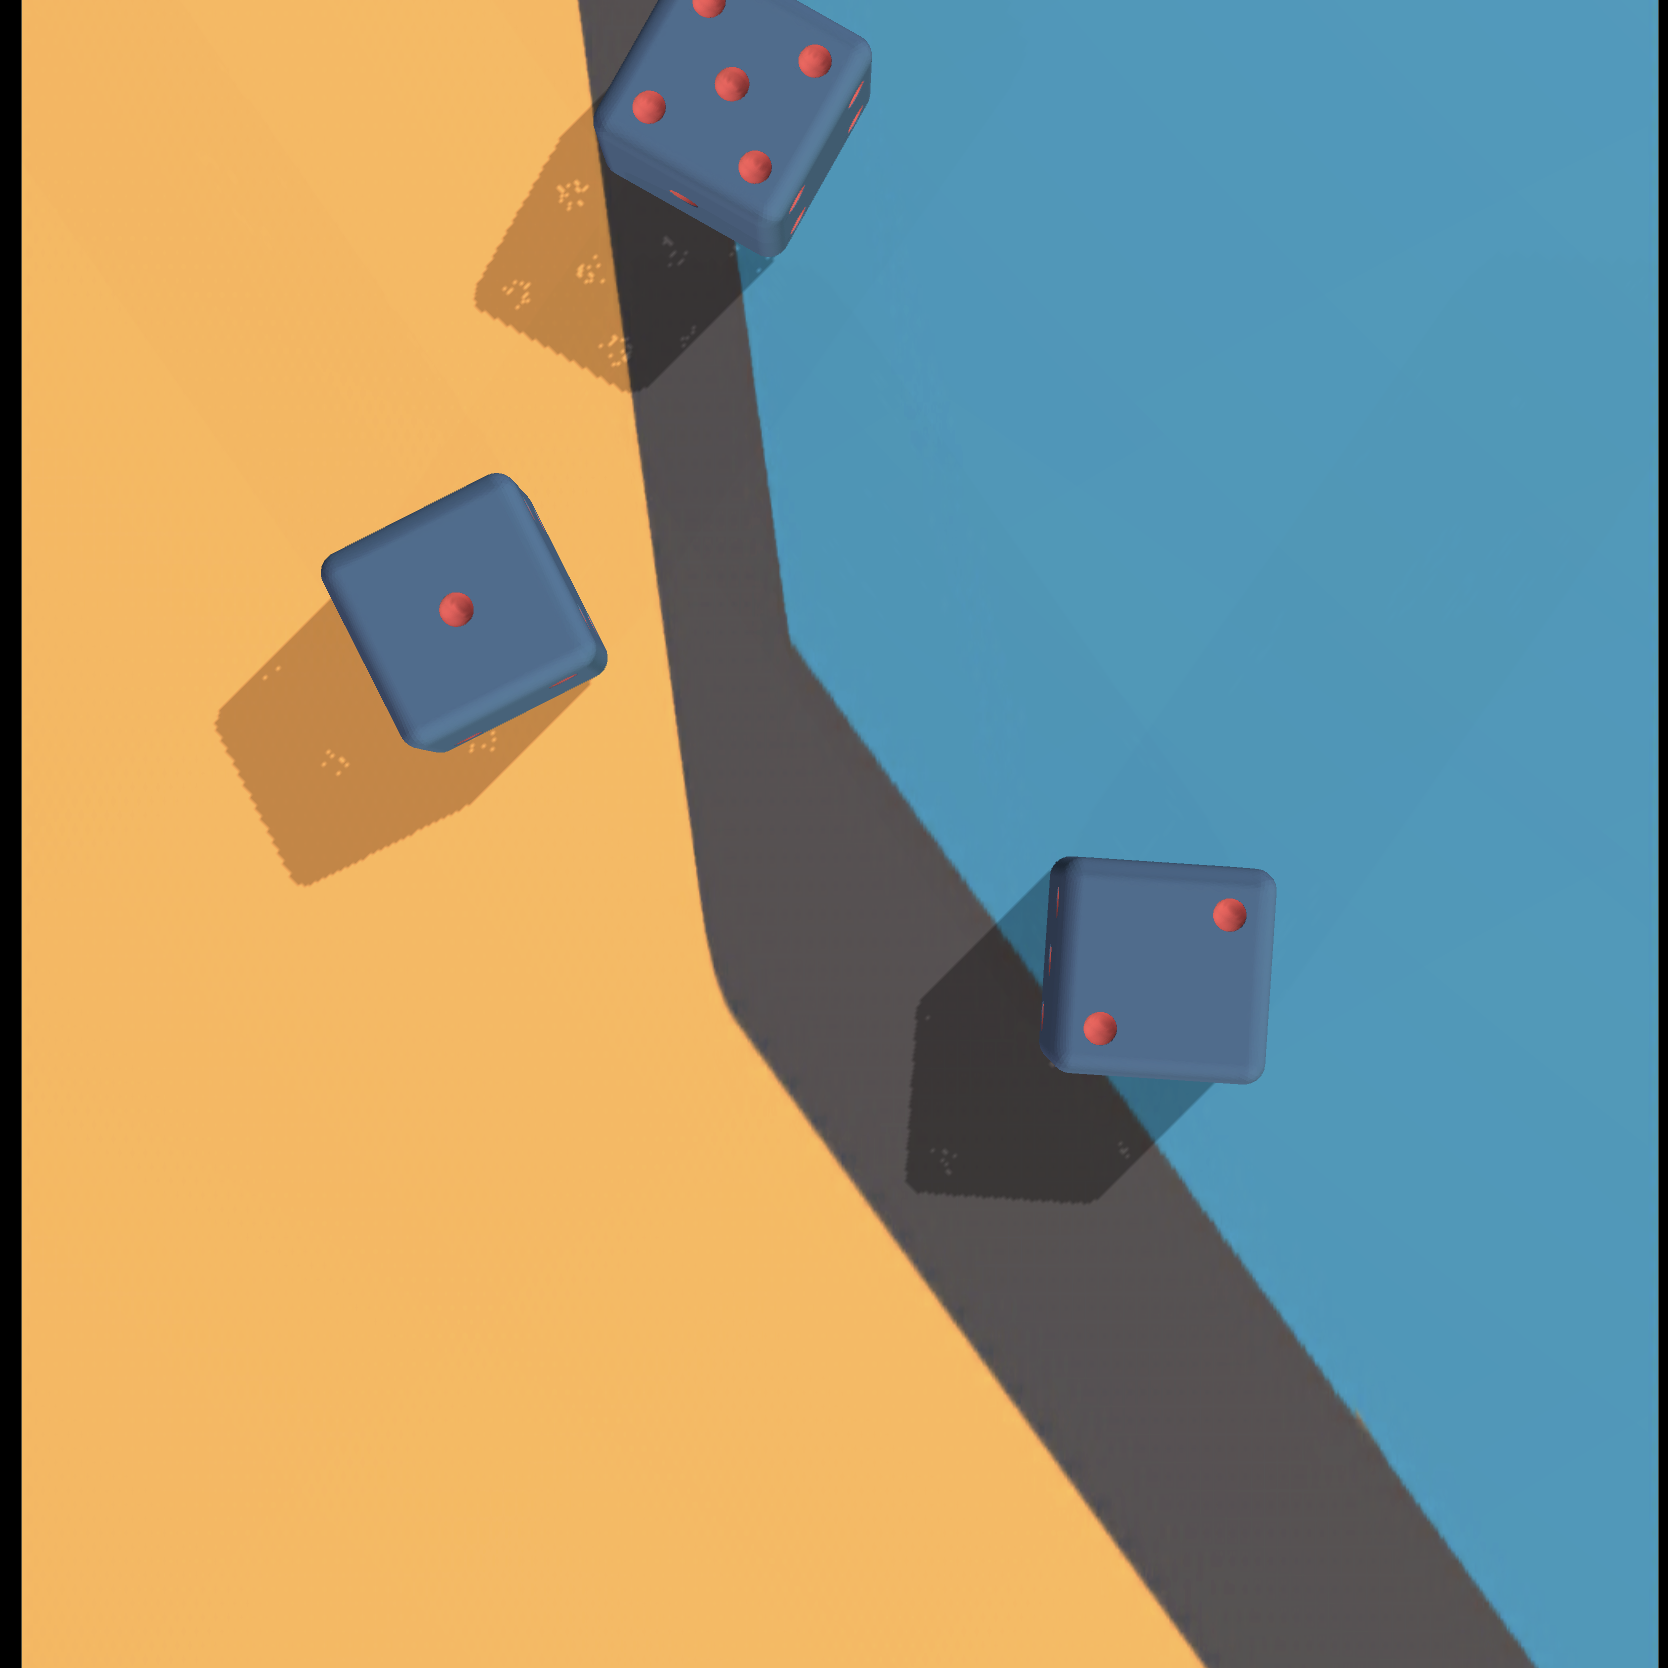 game dice 3d screenshot